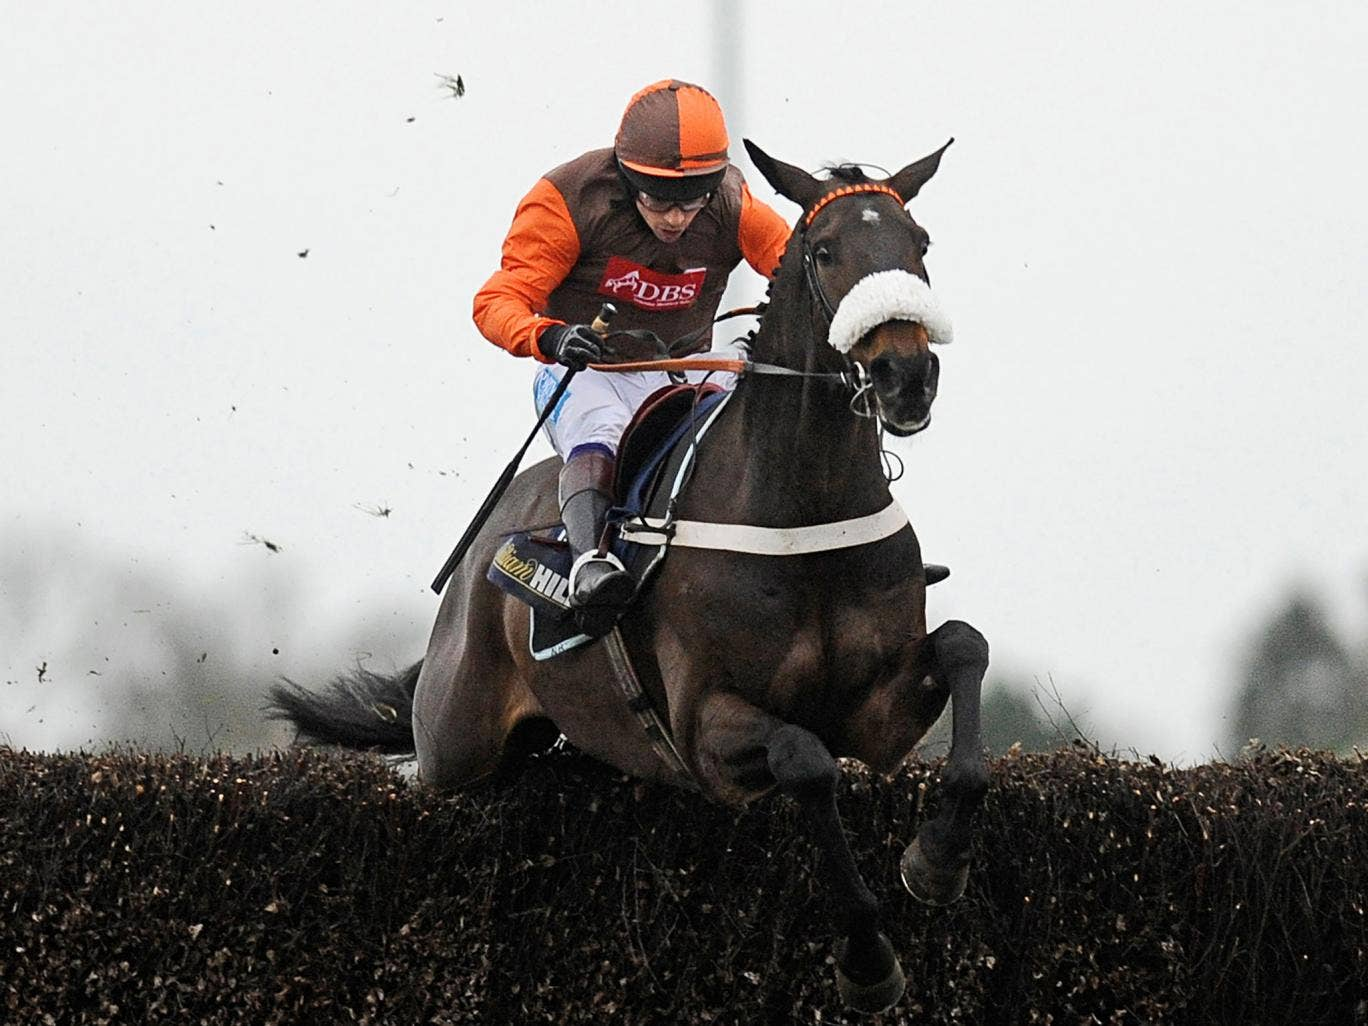 Long Run, partnered by Sam Waley-Cohen, wins the King George VI Chase at Kempton last Christmas